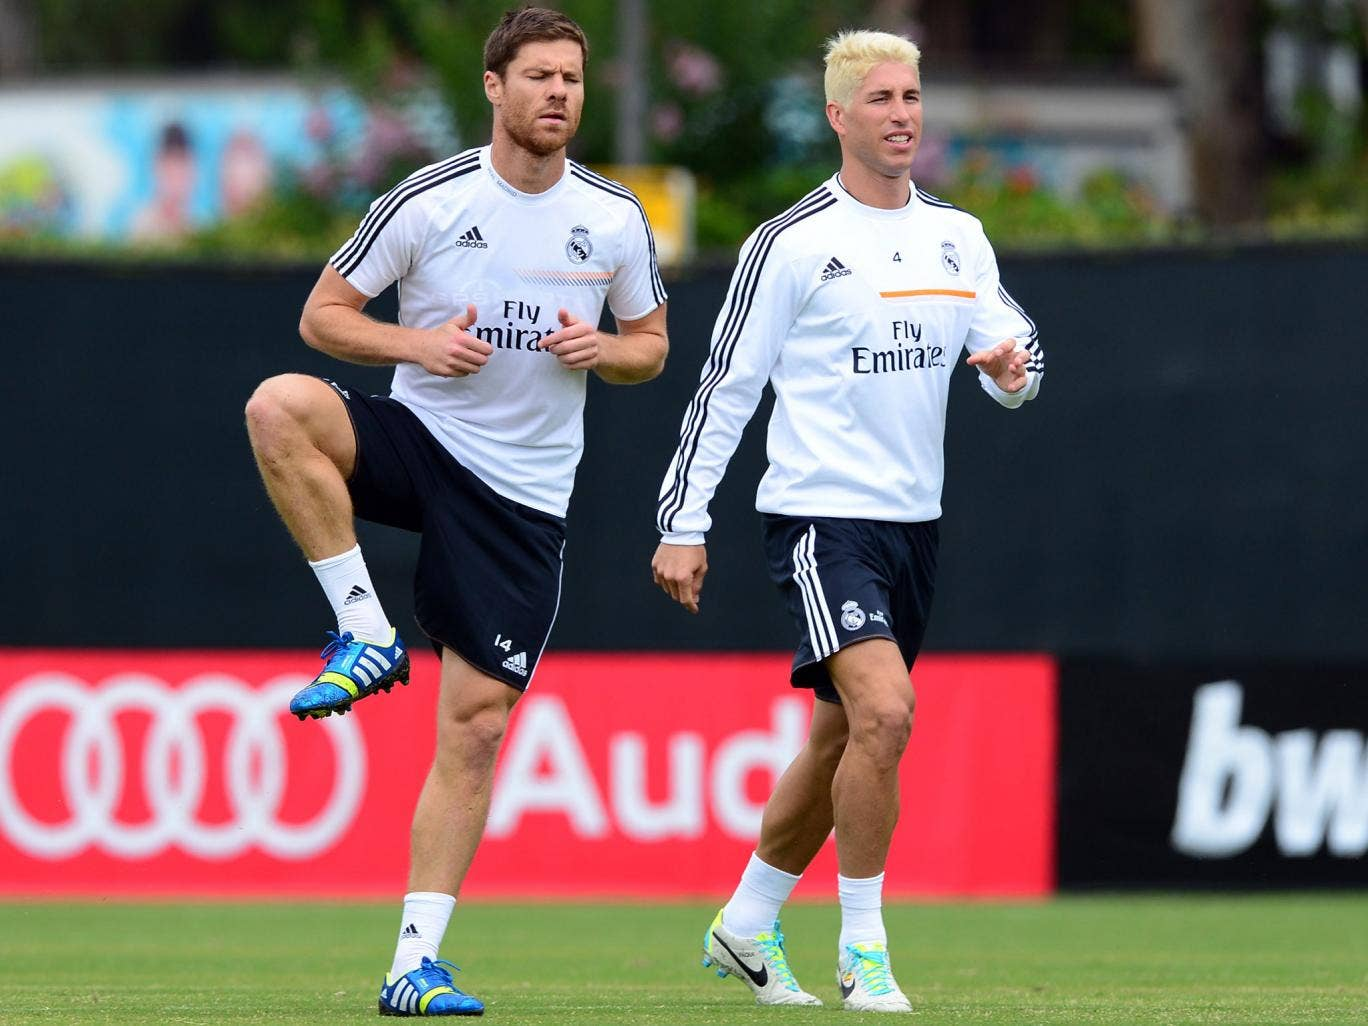 Xabi Alonso had only just returned to training after a groin operation but will now face up to three months out with a broken foot